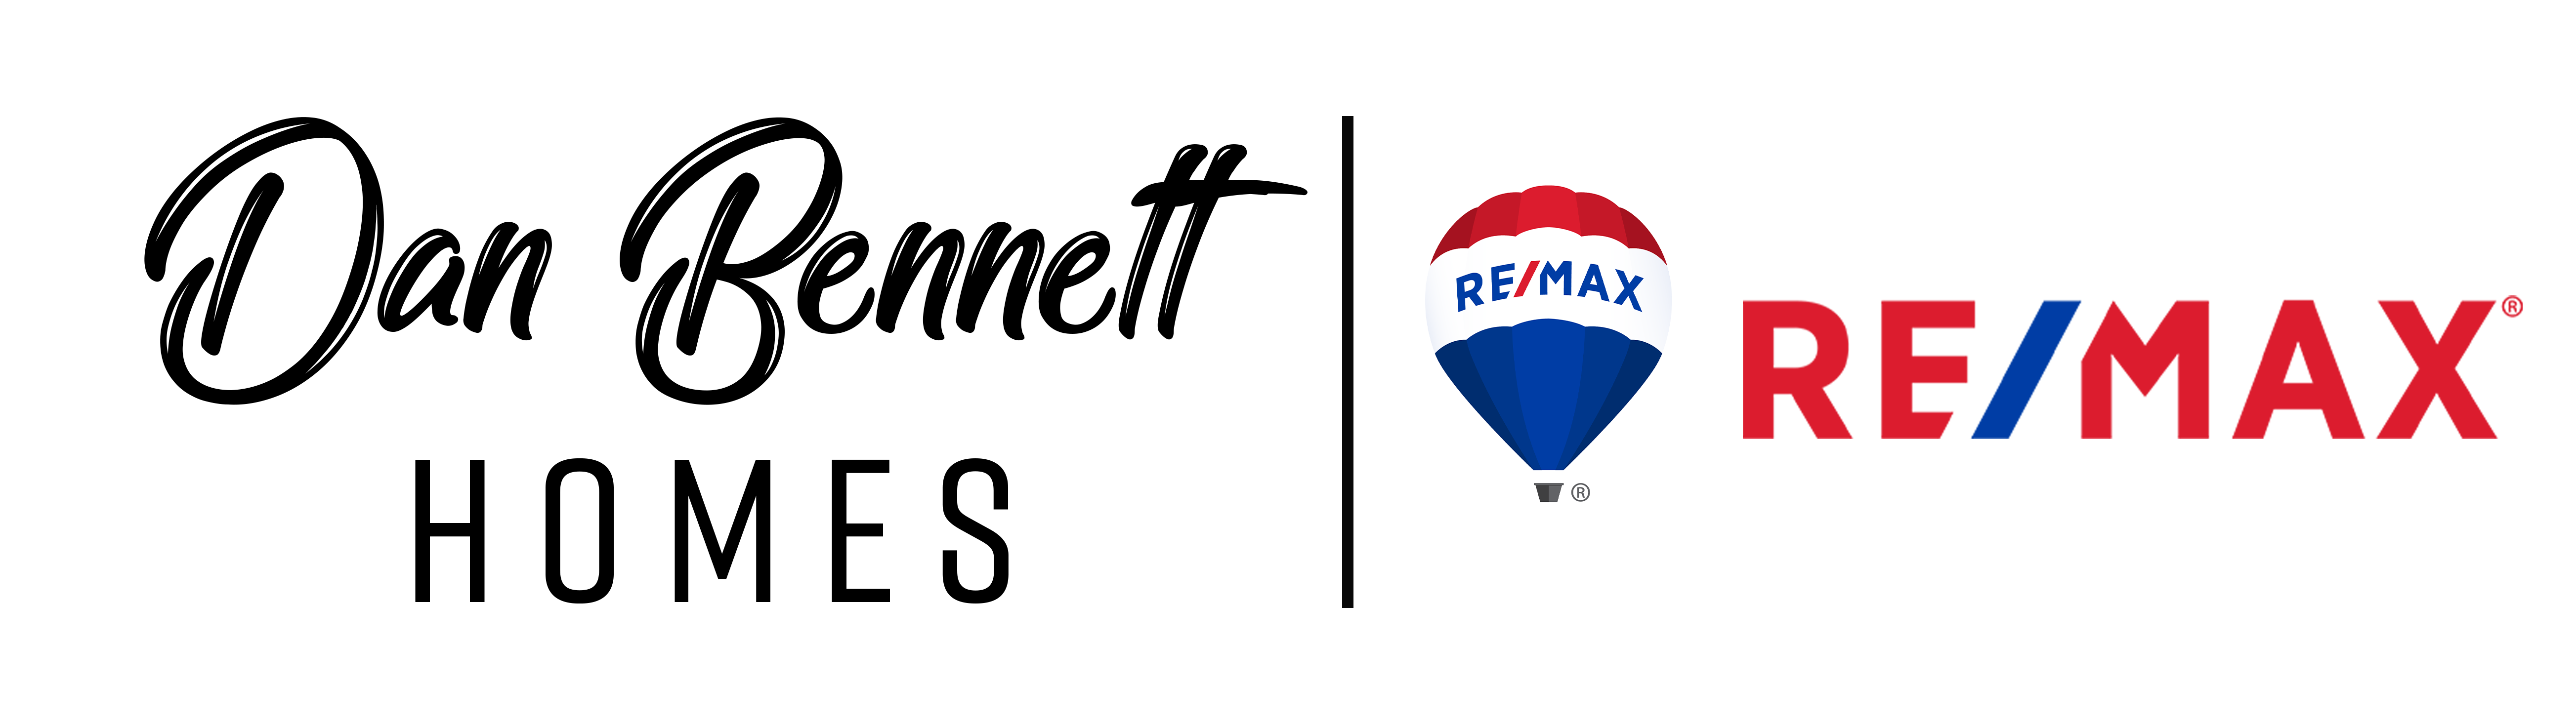 REMAX Exclusive